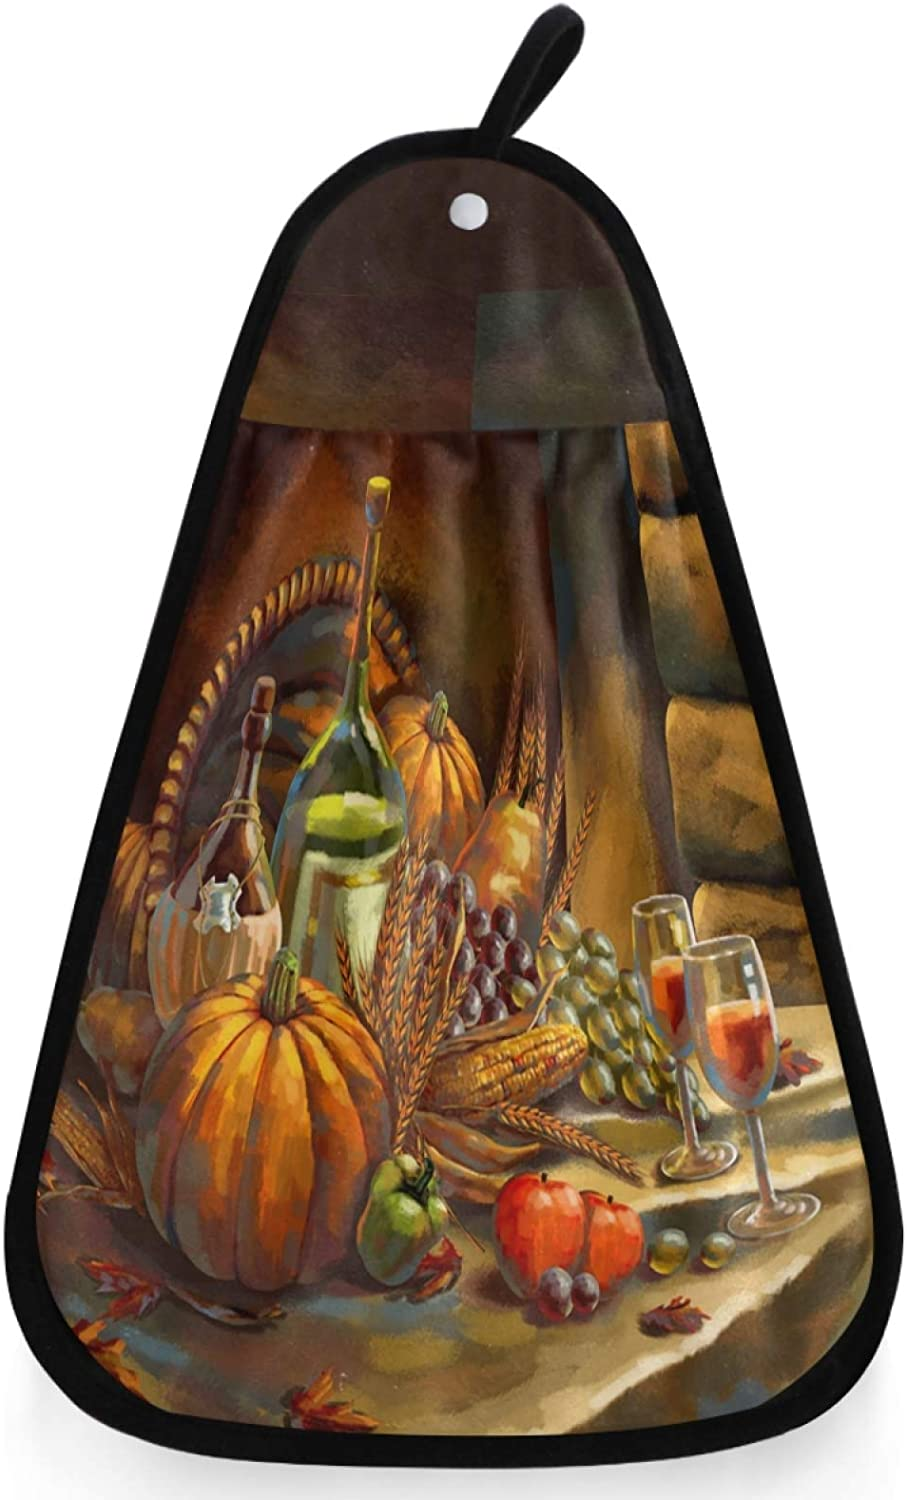 visesunny Thanksgiving Fall Harvest Pumpkin Grape Wine Kitchen Dish Towel with Hanging Loop Absorbent Hand Towel for Bathroom Cleaning and Drying Washcloth